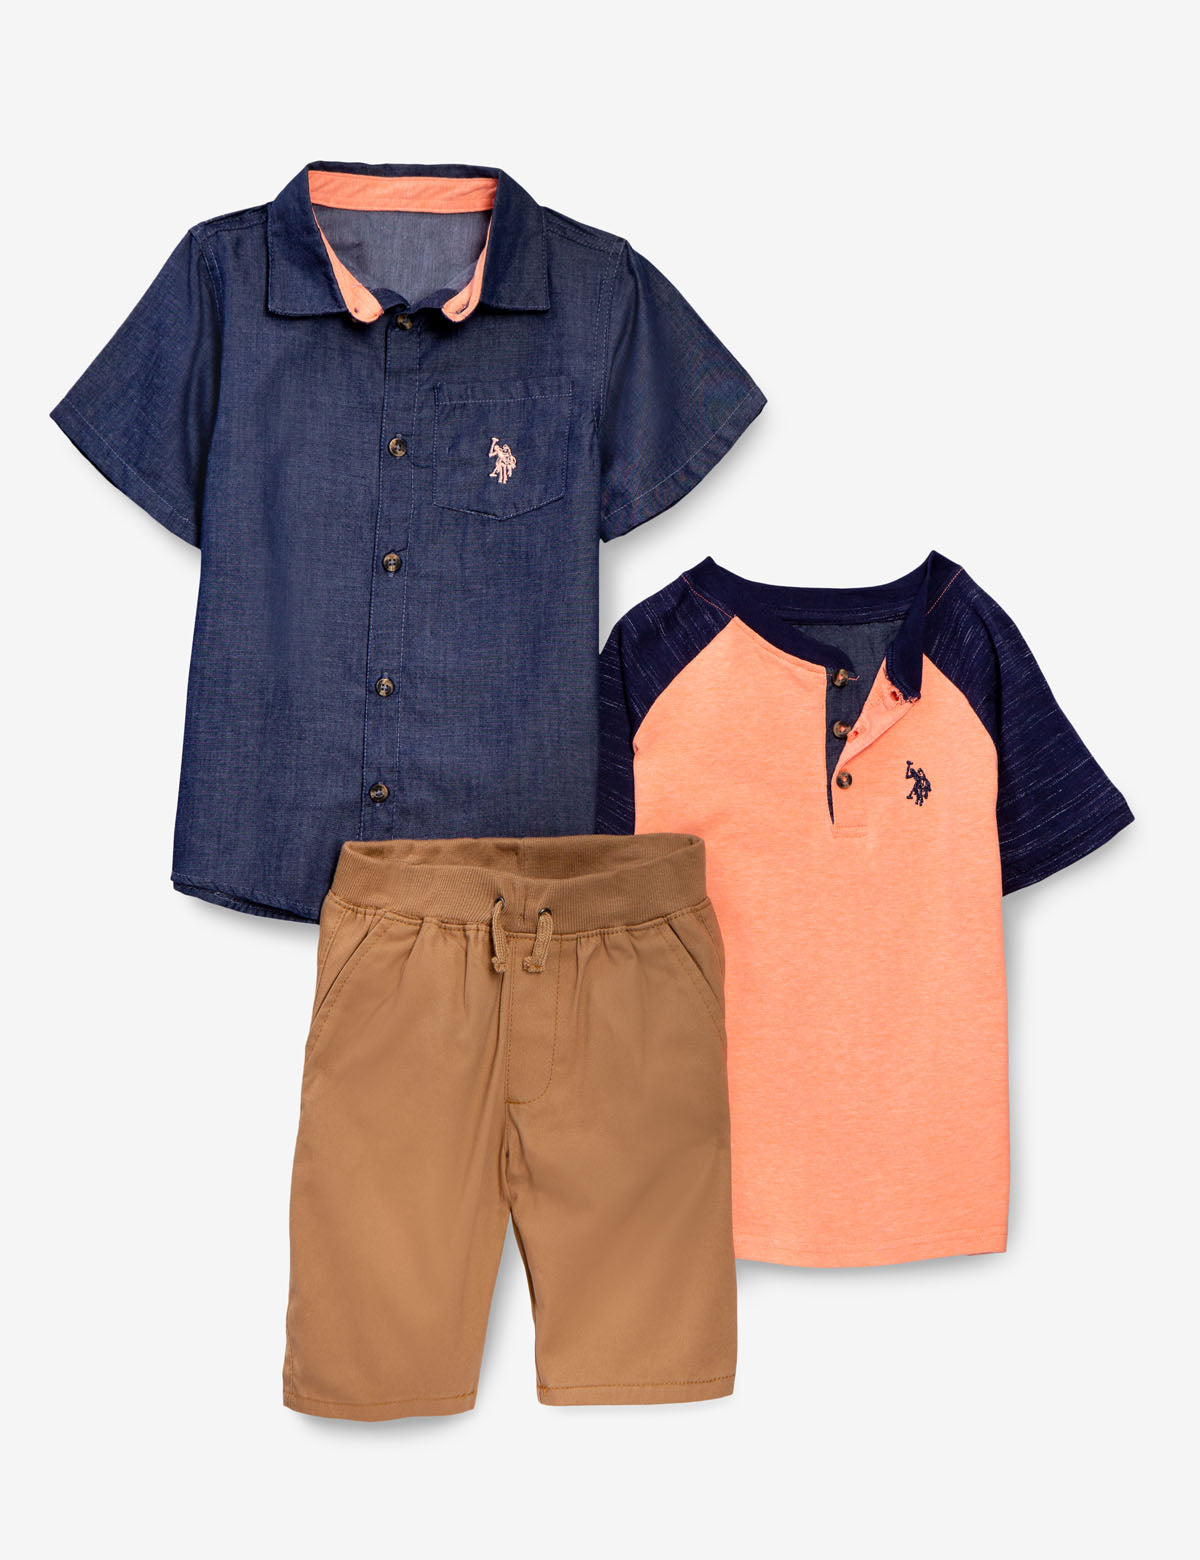 BOYS 3 PIECE SET - SHIRT, TEE & SHORTS